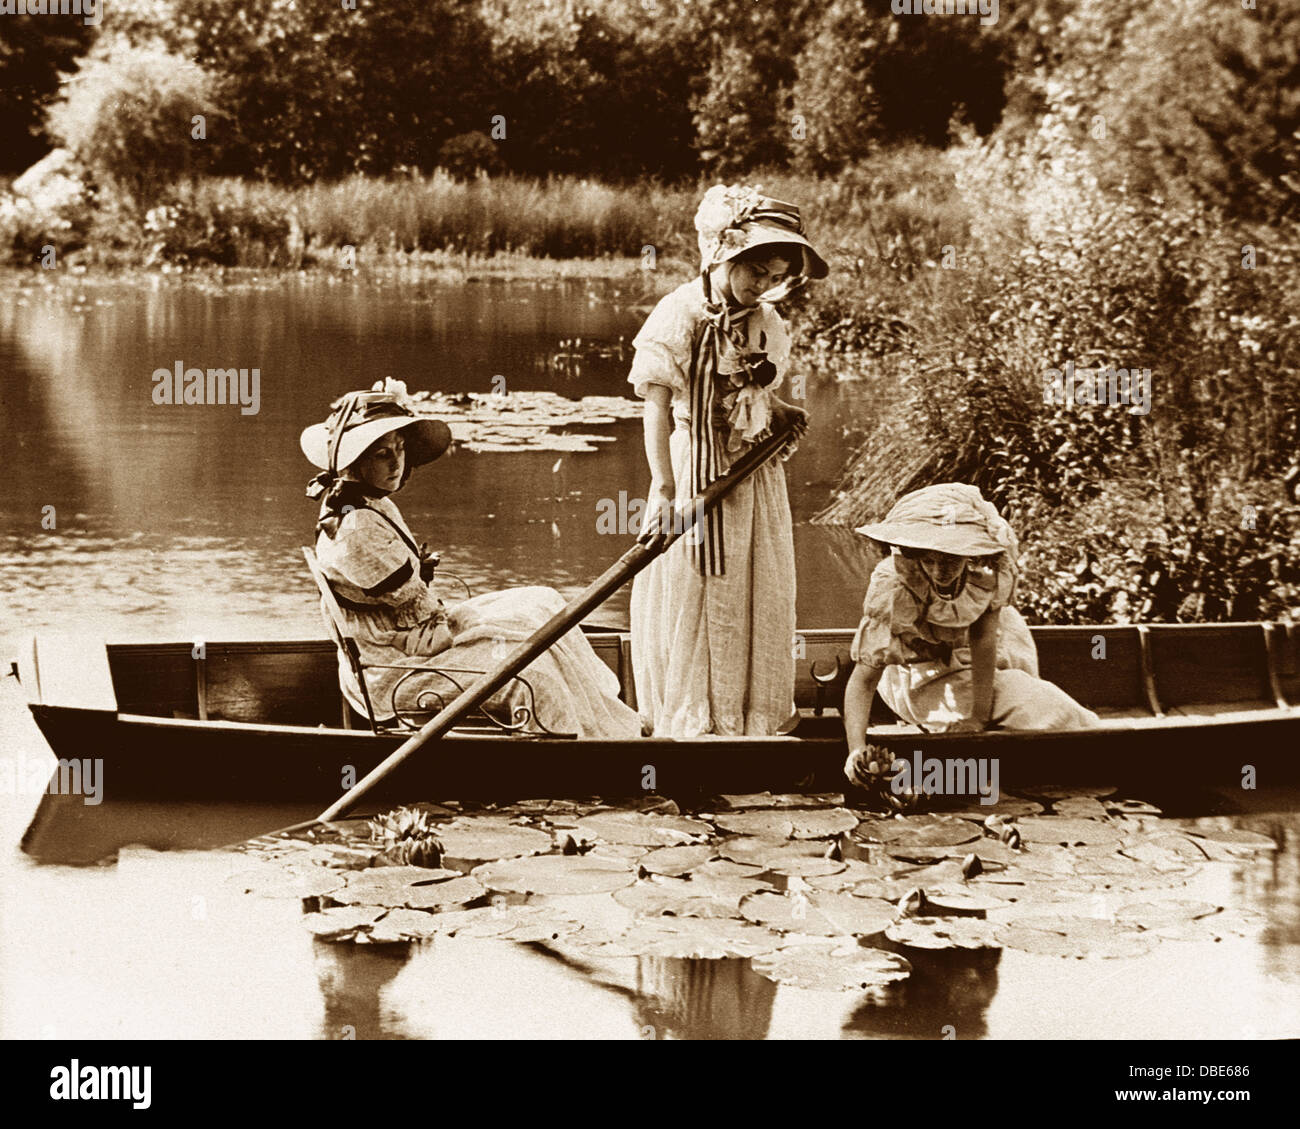 A Summer's Day Victorian period - Stock Image